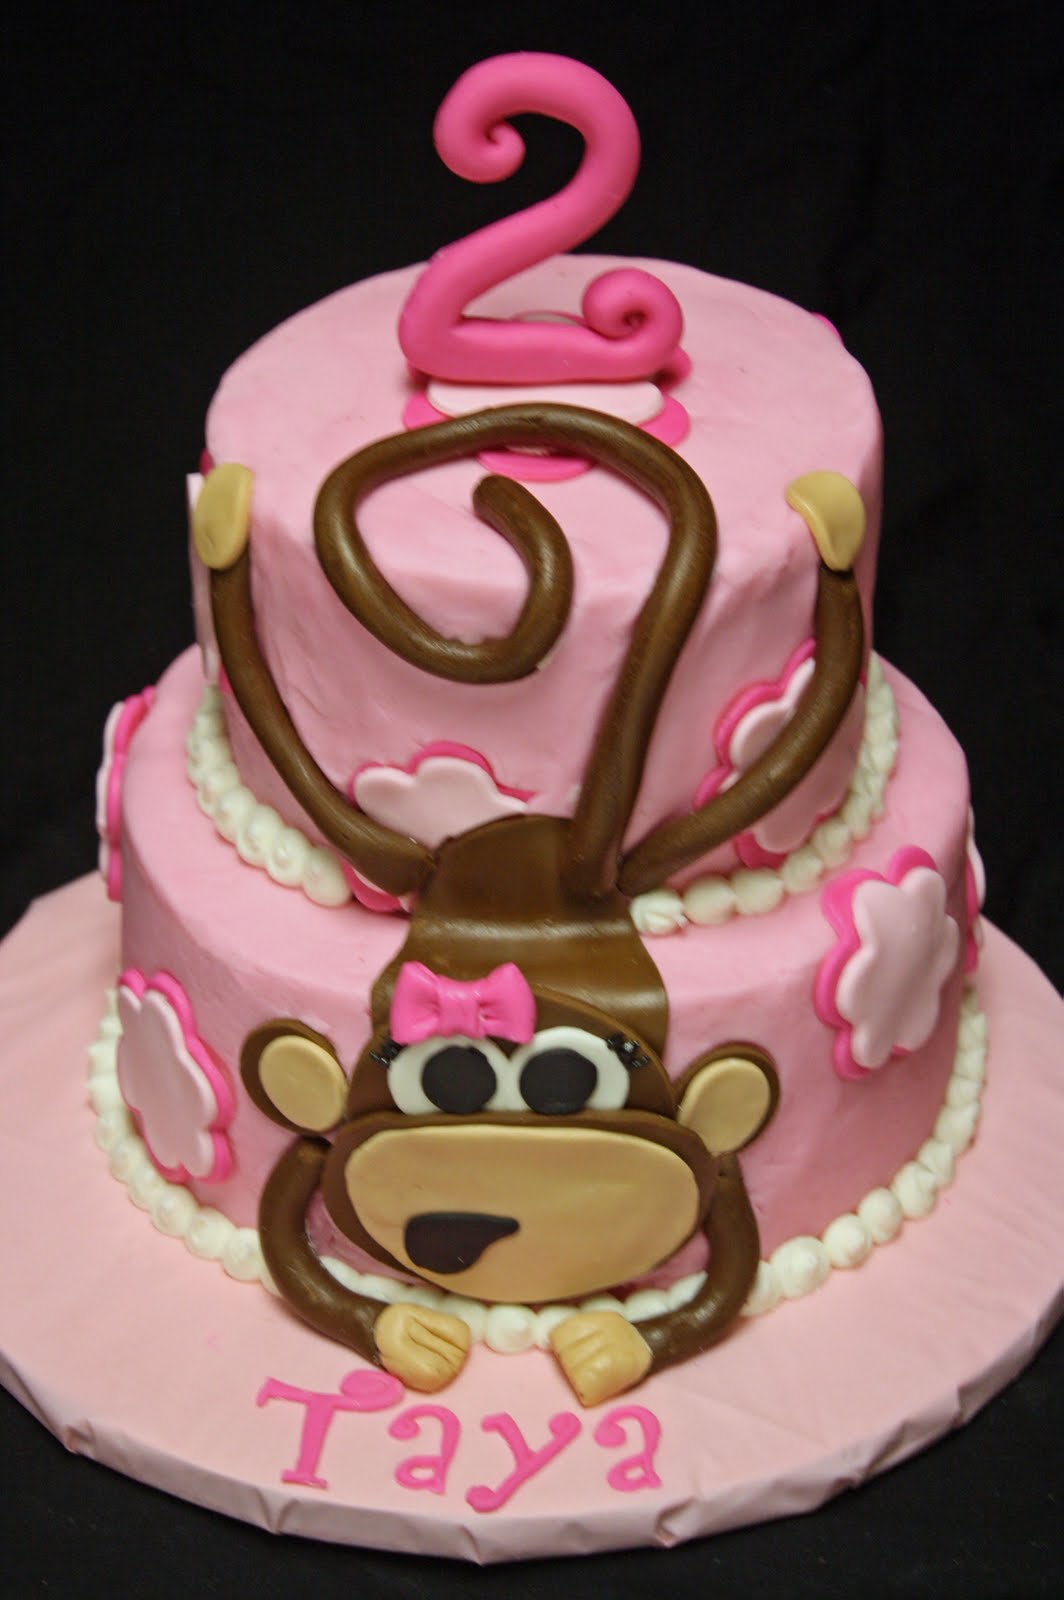 Monkey cake recipe dishmaps for Monkey birthday cake template